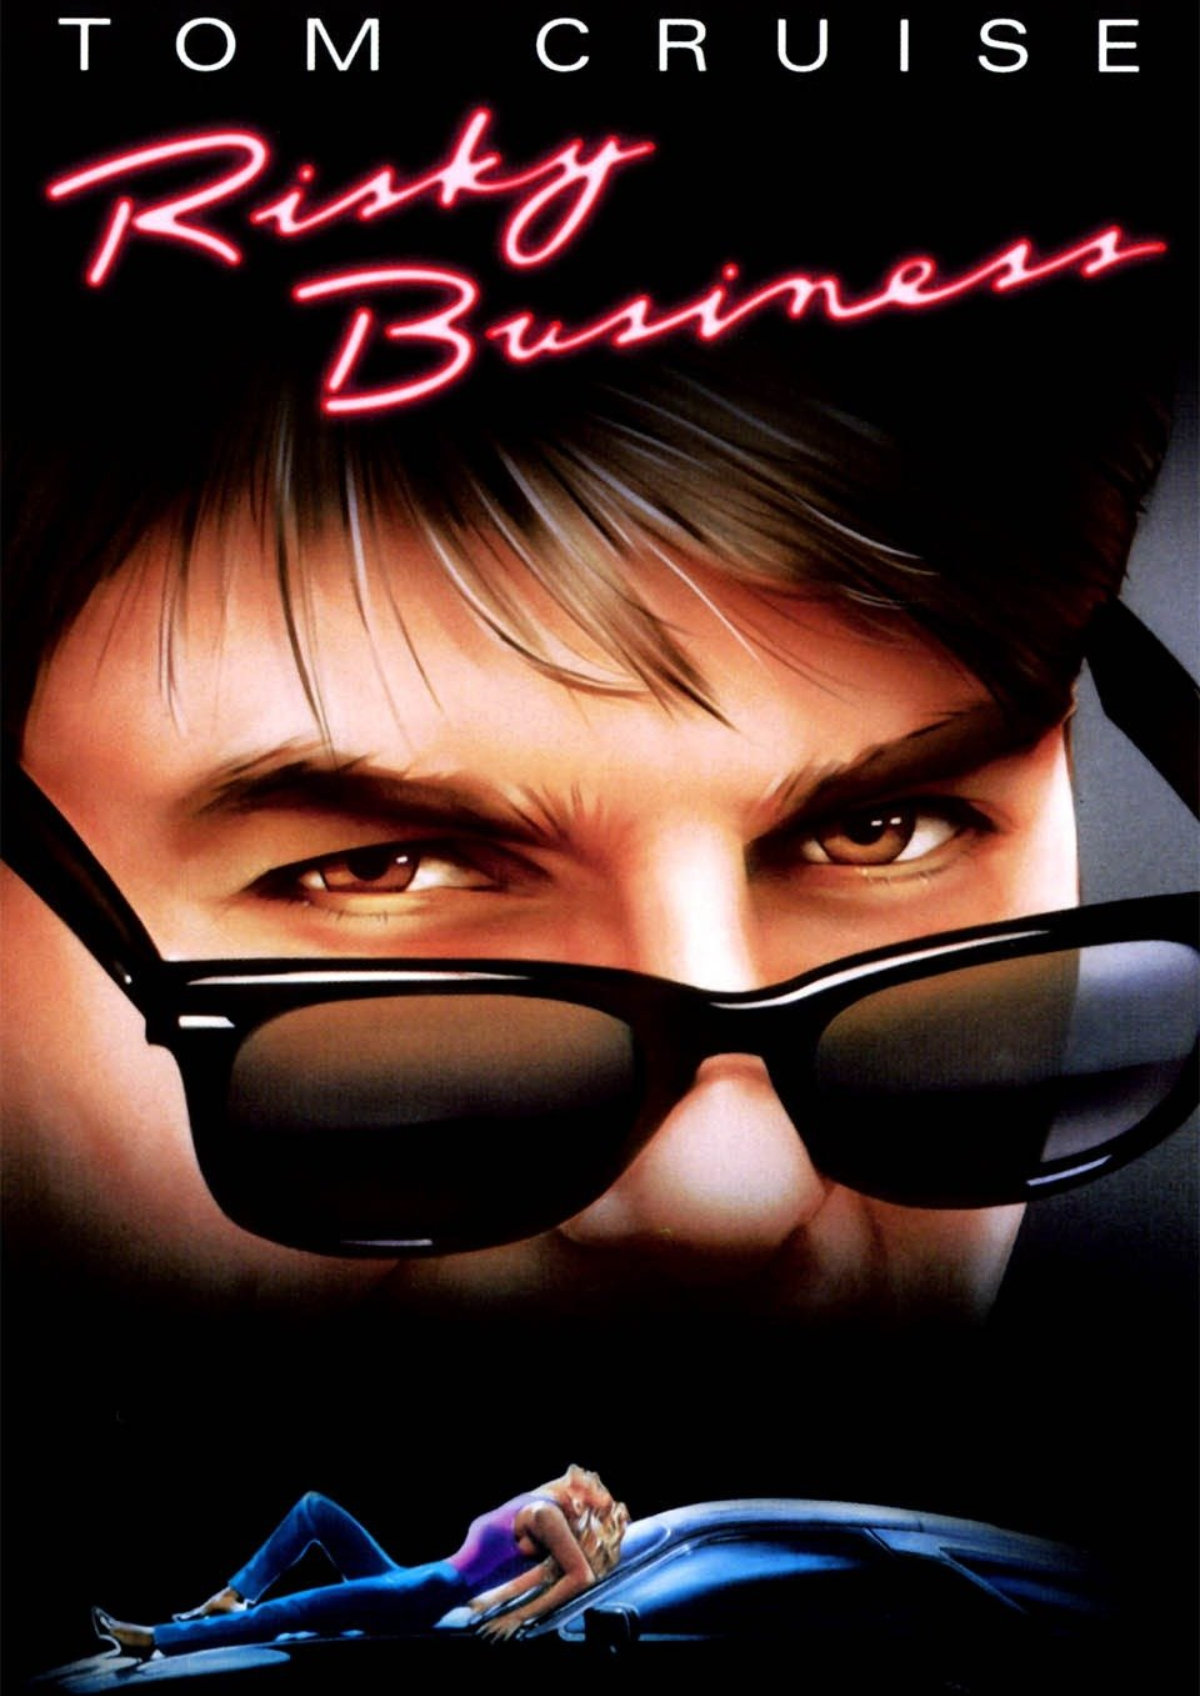 'Risky Business' movie poster